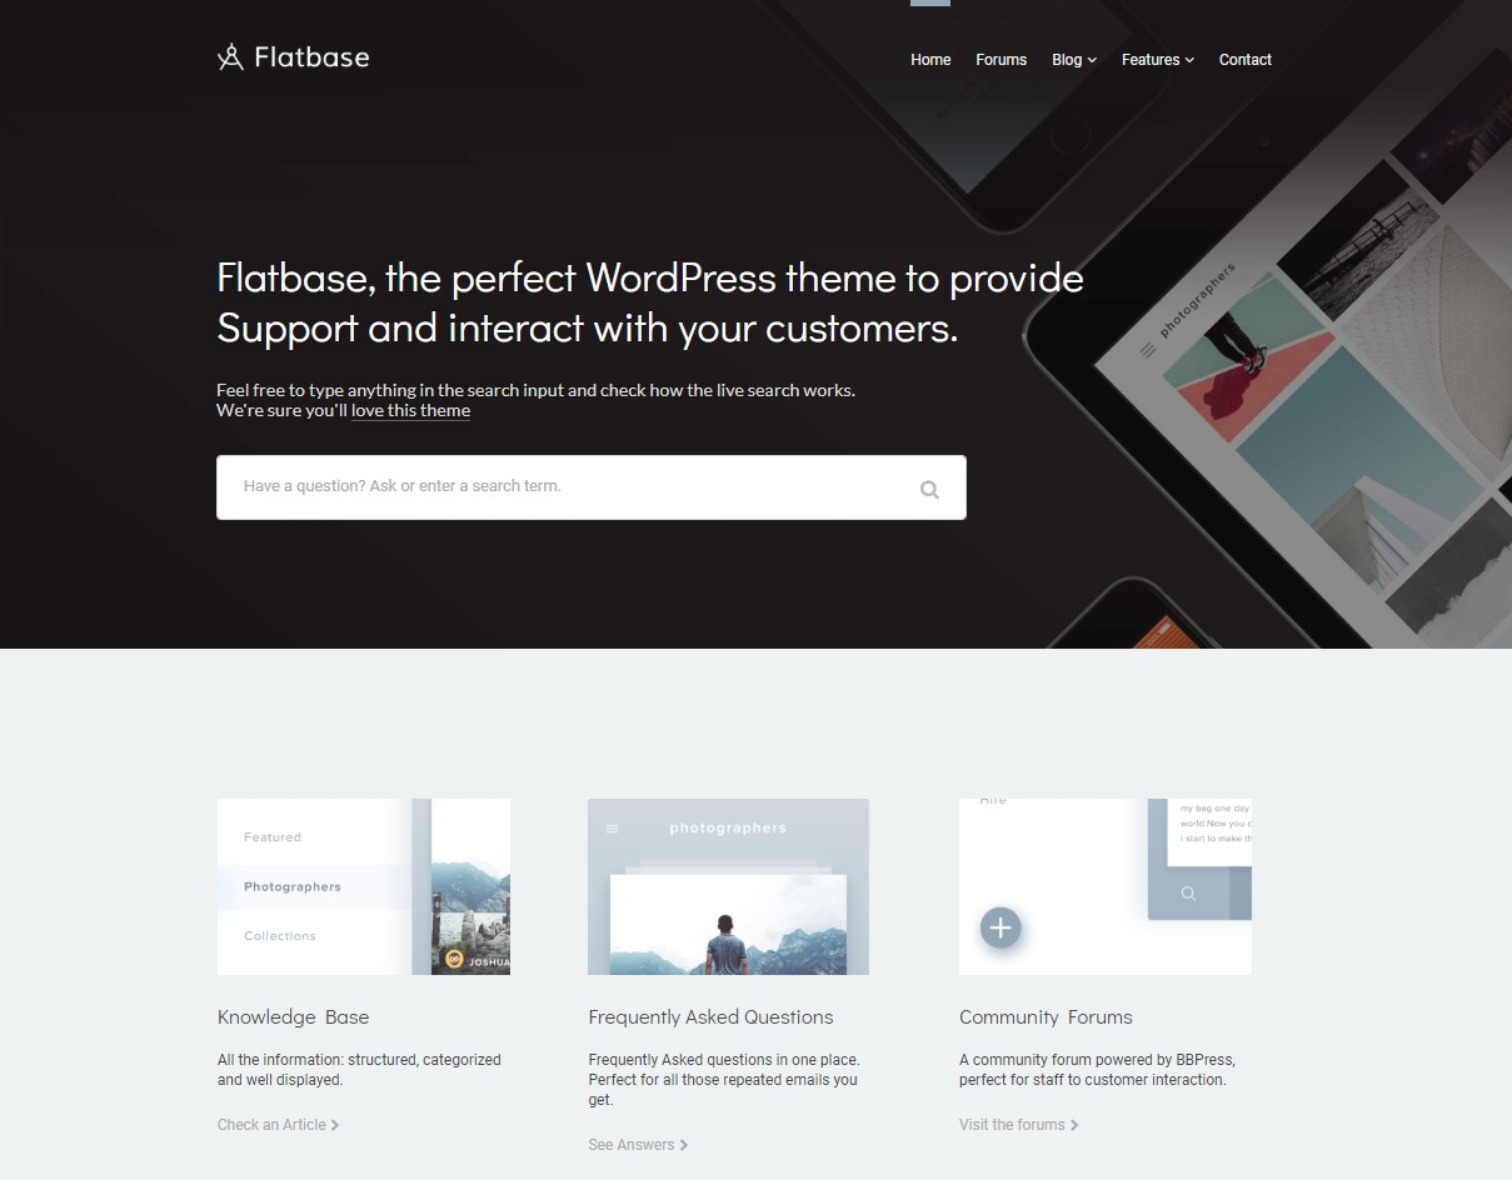 Flatbase WordPress Theme for Knowledge Base FAQ and Community Forums